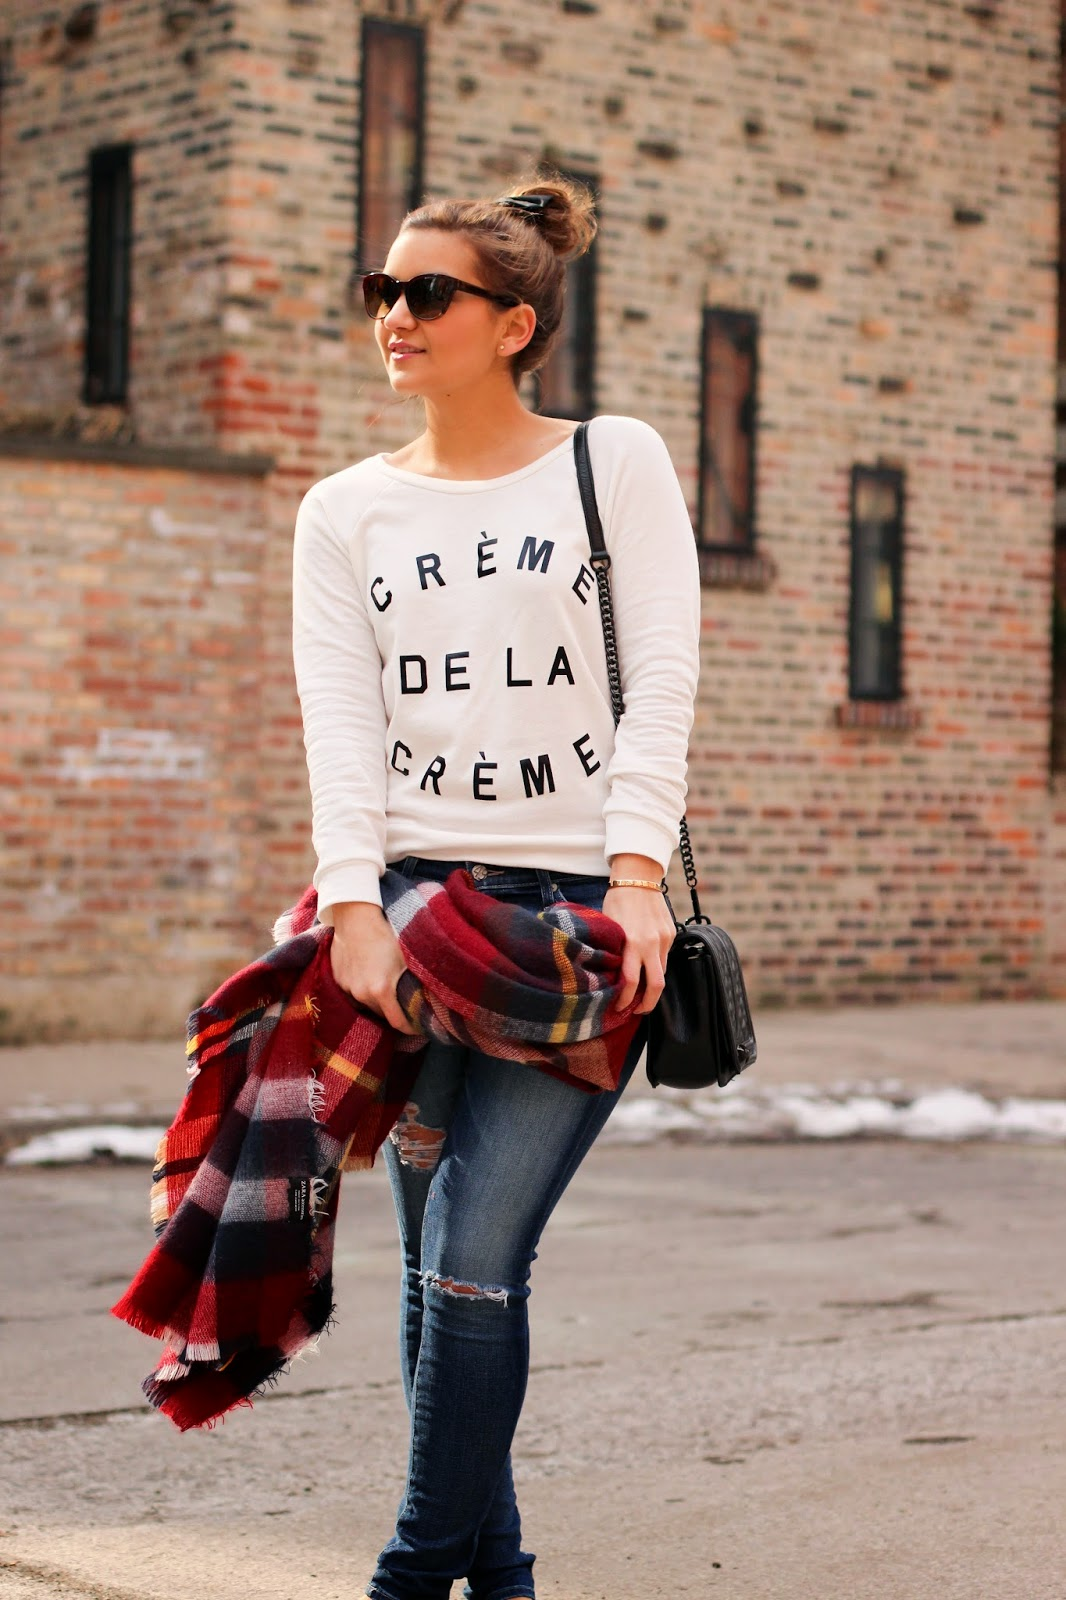 Creme de la Creme Sweatshirt | Lake Shore Lady